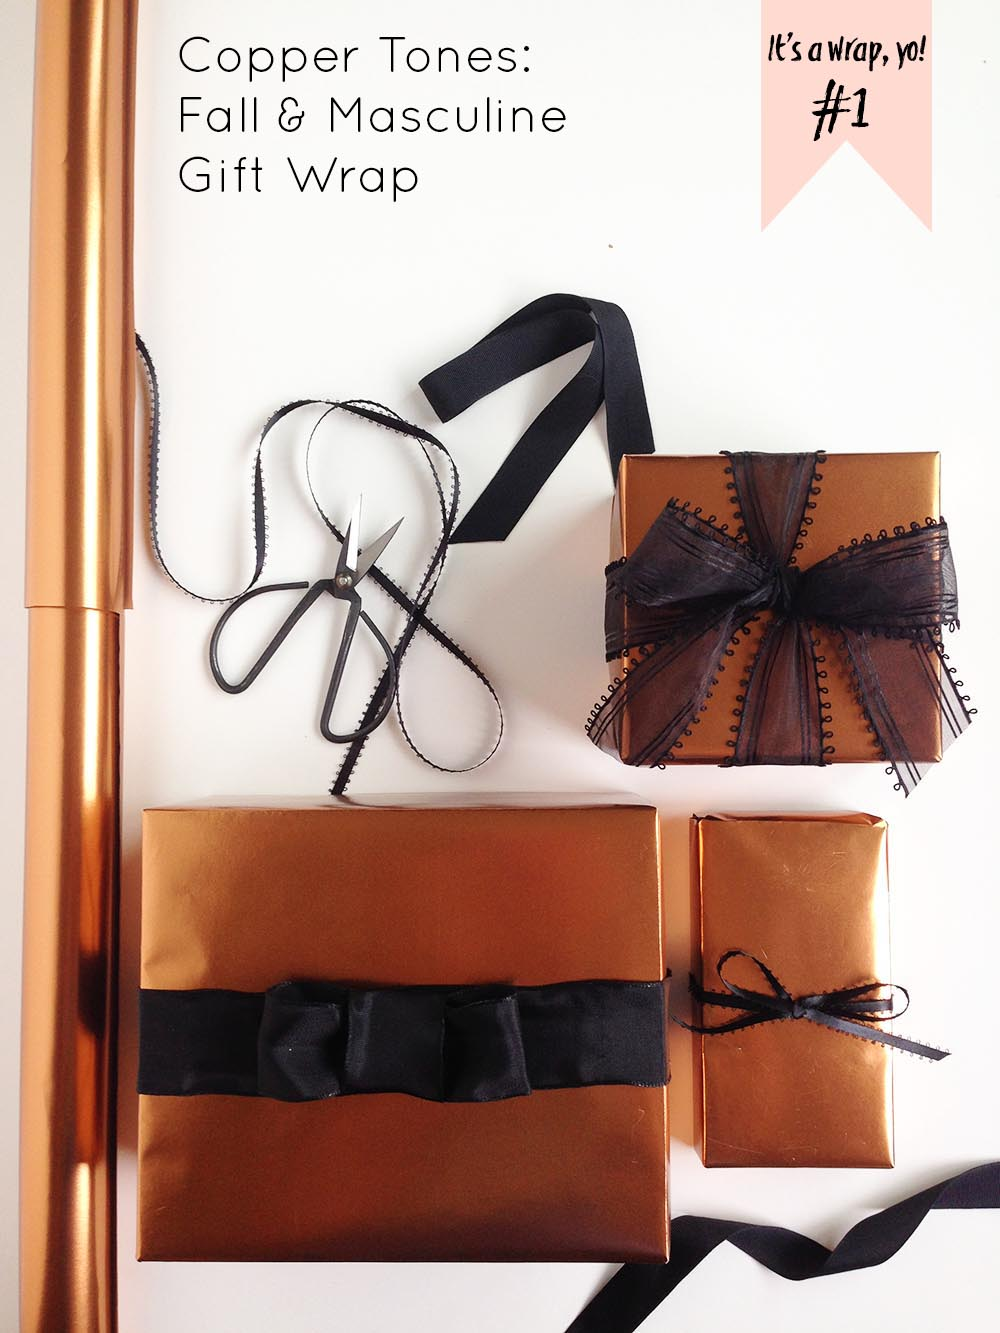 It s a wrap yo wrapping tips copper tones for fall